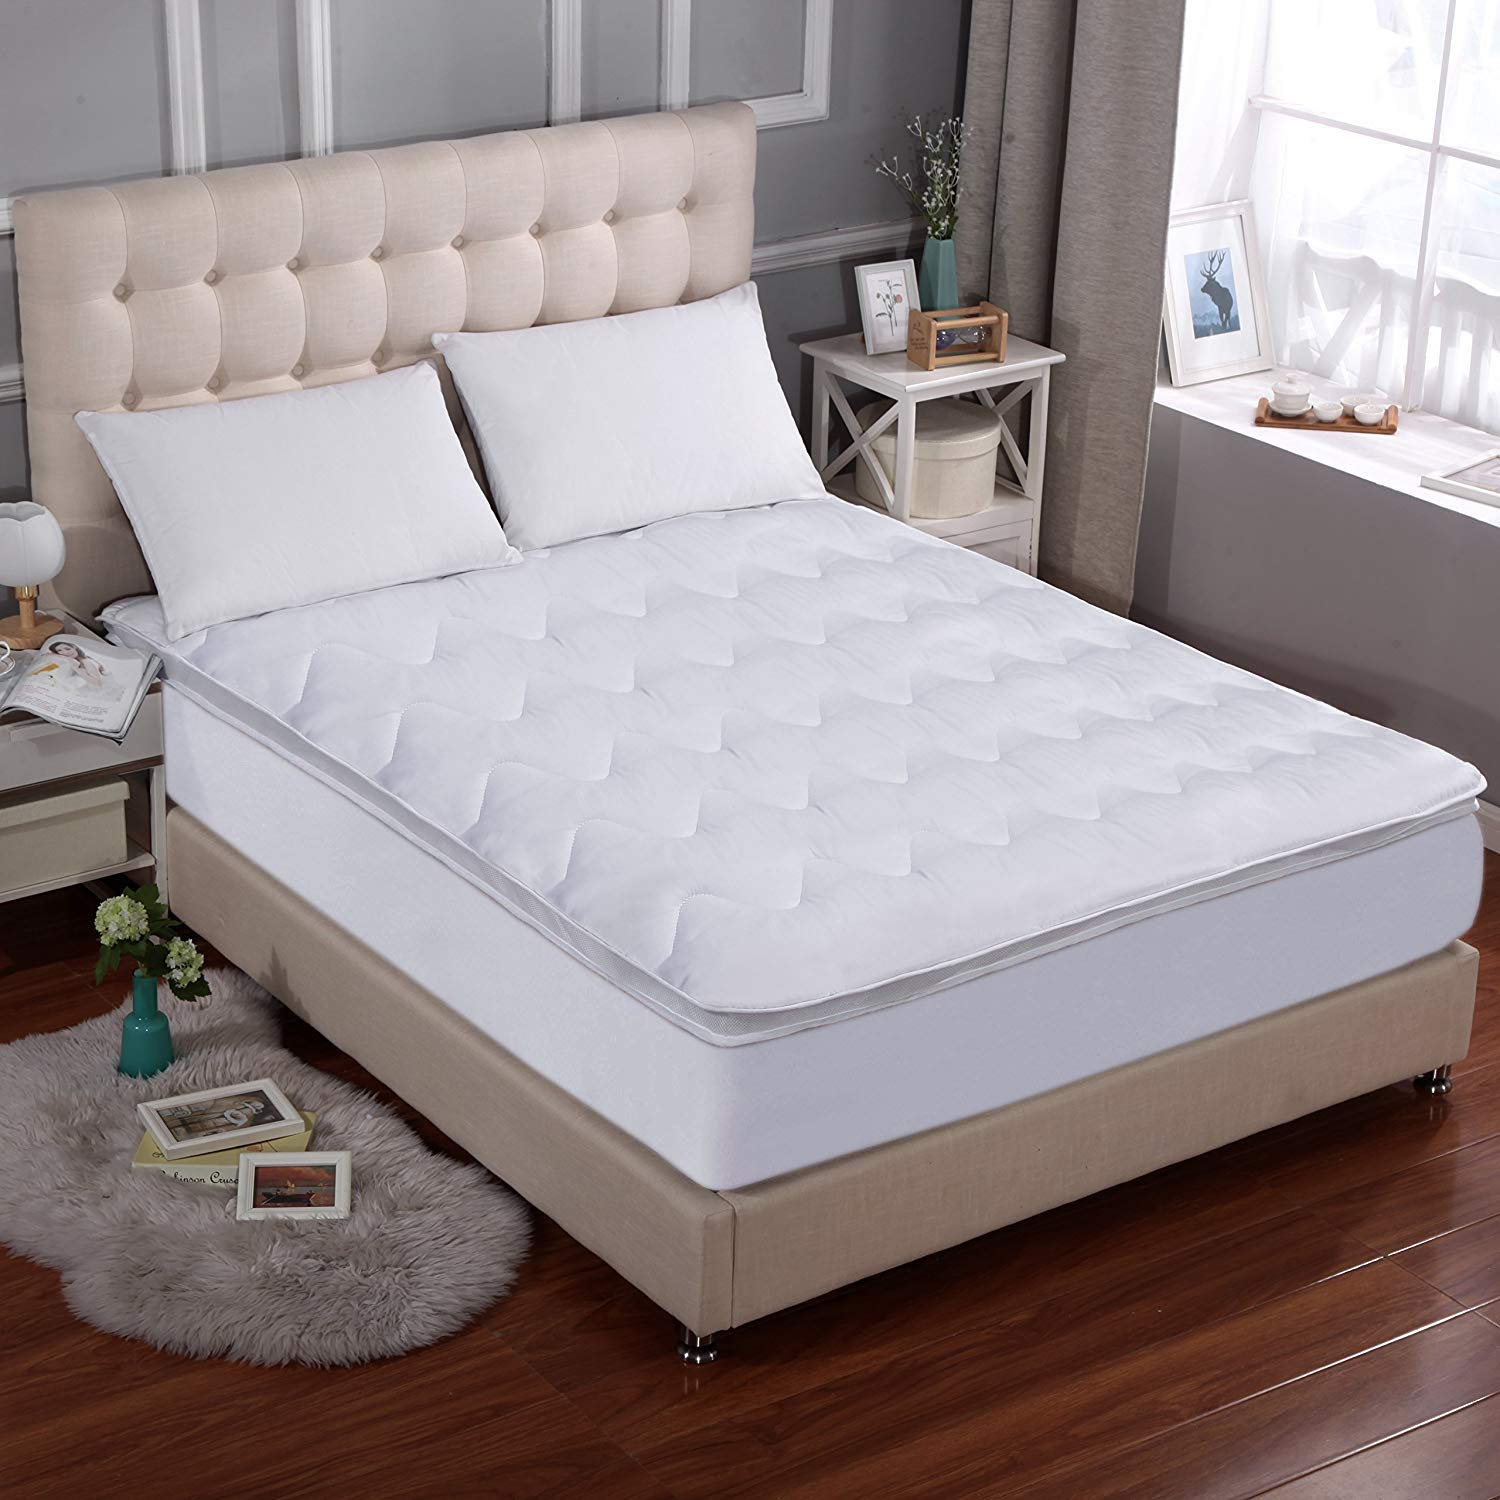 MARQUESS Mattress Topper with Double-Deck, Airflow New Breathable Structure and Ultra Soft Mattress Topper Cover, Cooling Full Size with 16'' Deep Pocket (54'' x 75'')